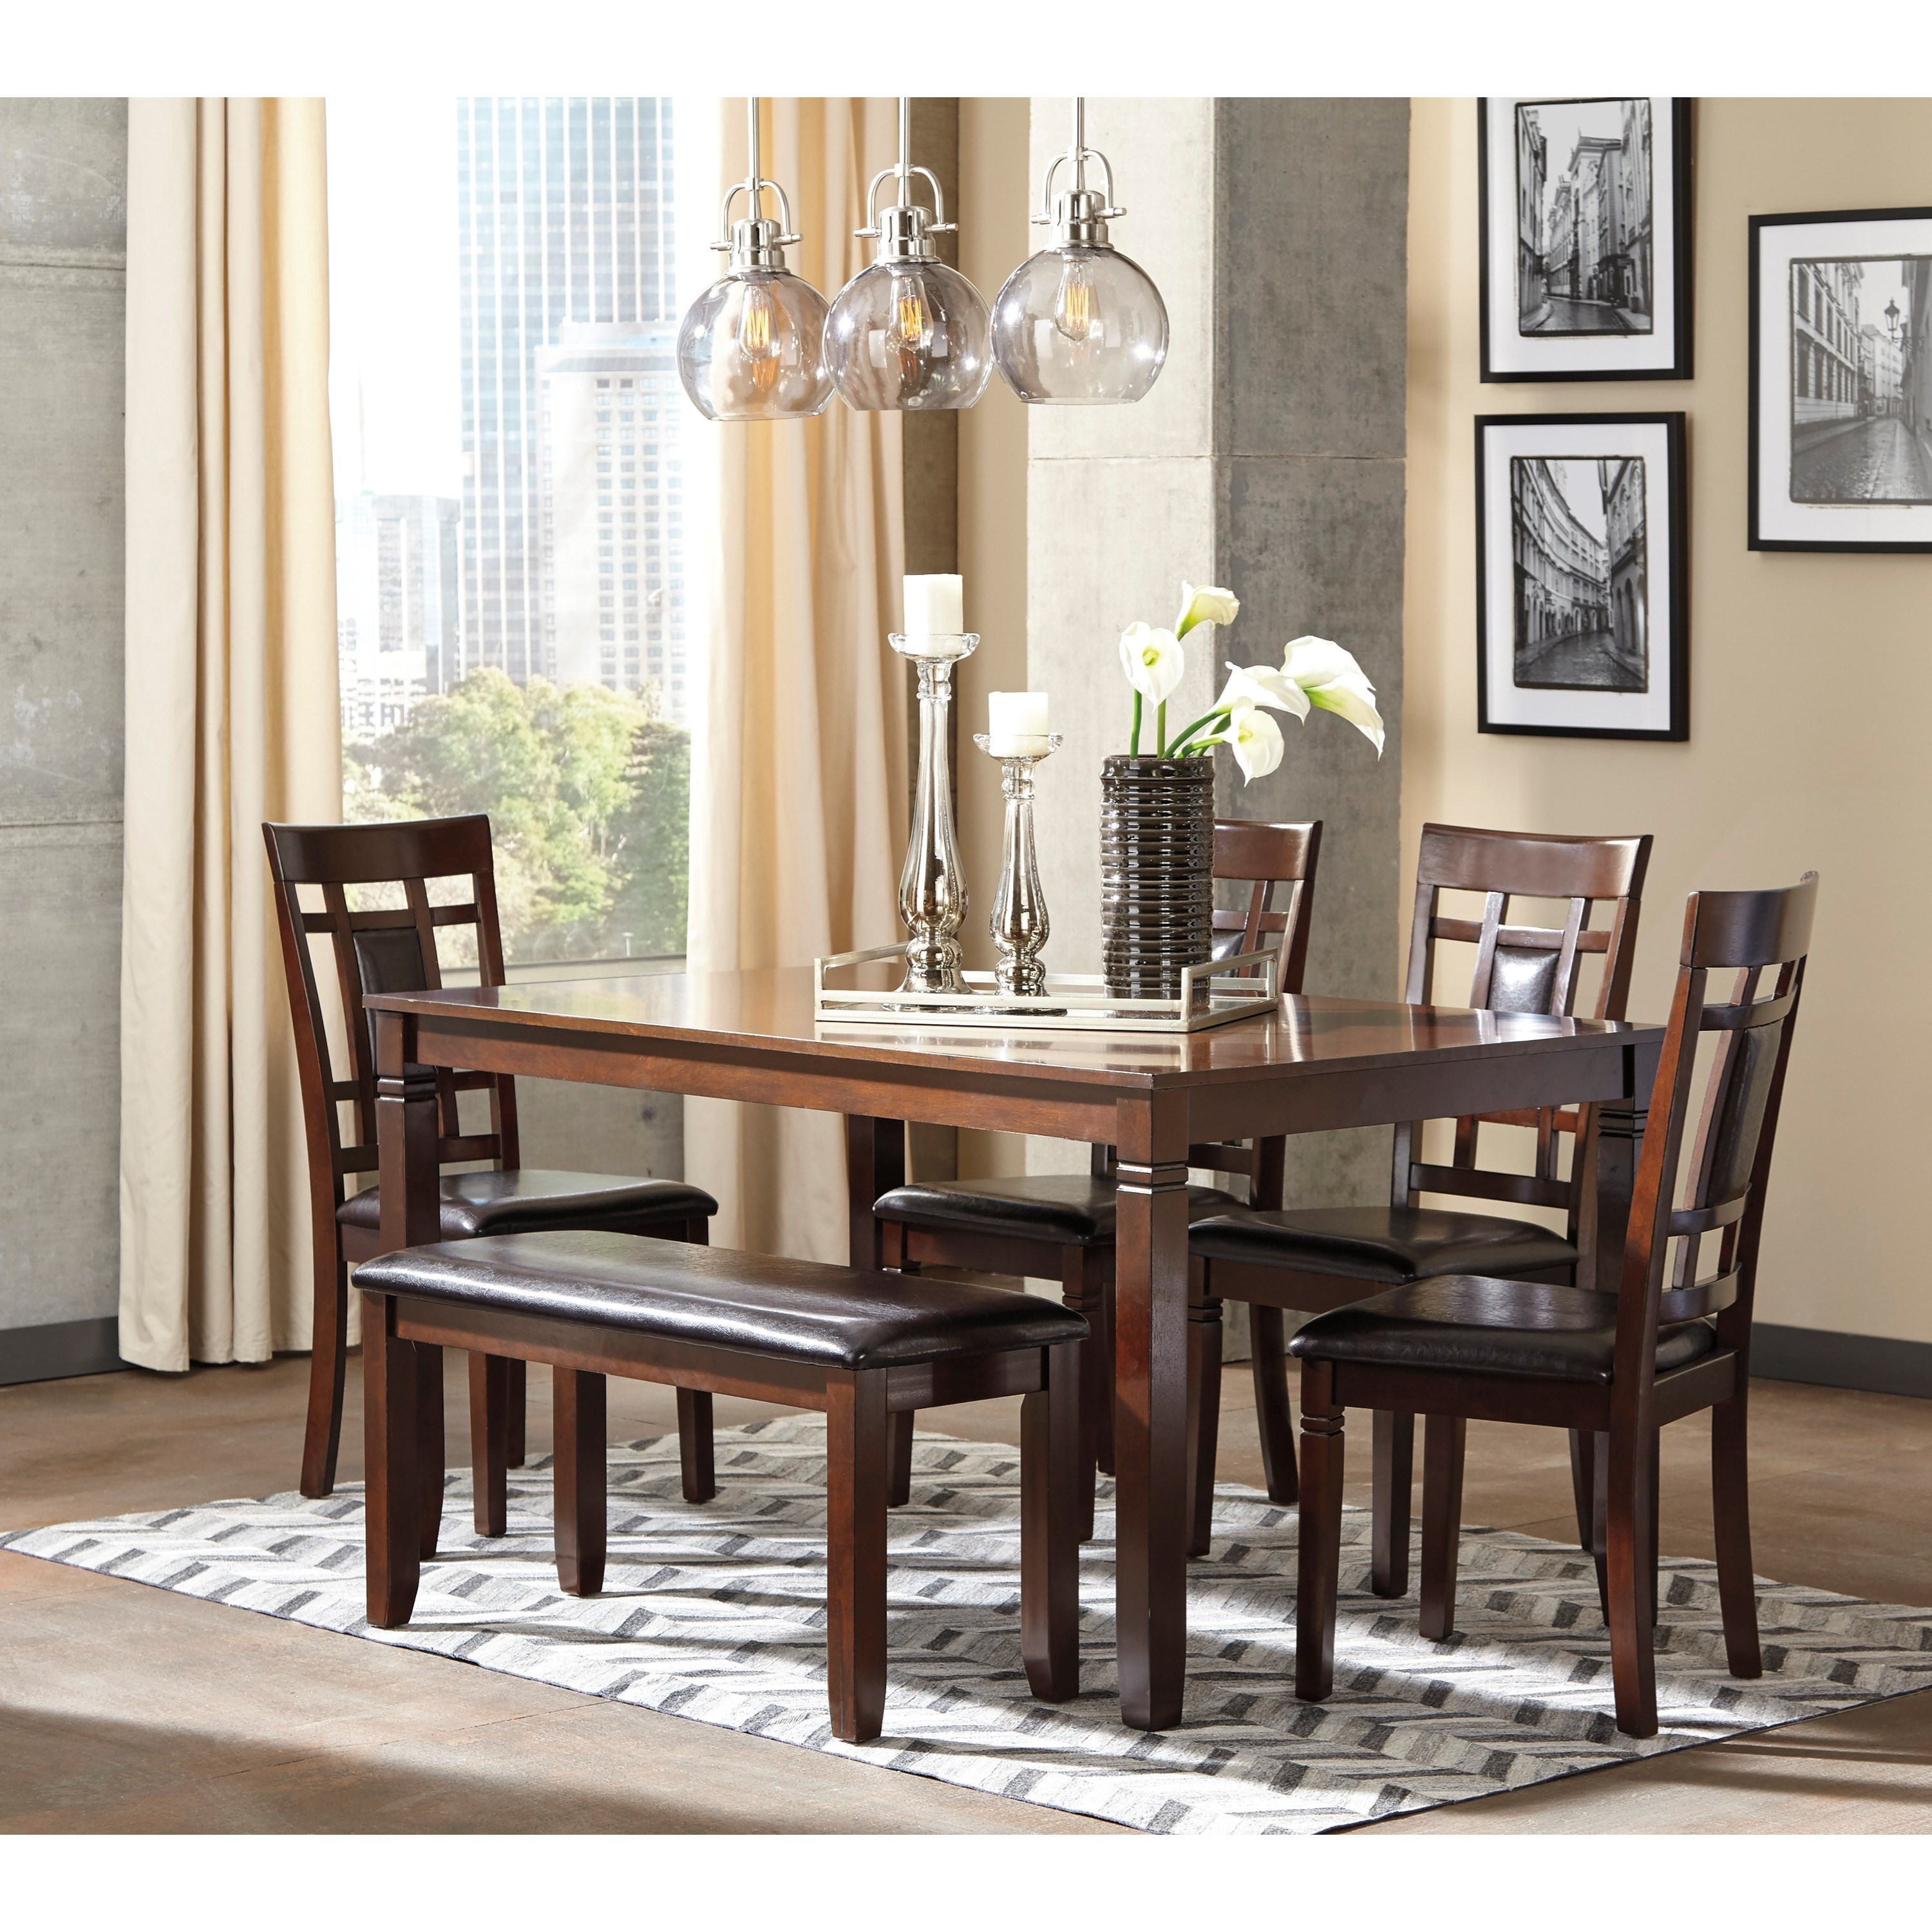 signature design by ashley bennox contemporary 6 piece dining room table set with bench royal. Black Bedroom Furniture Sets. Home Design Ideas